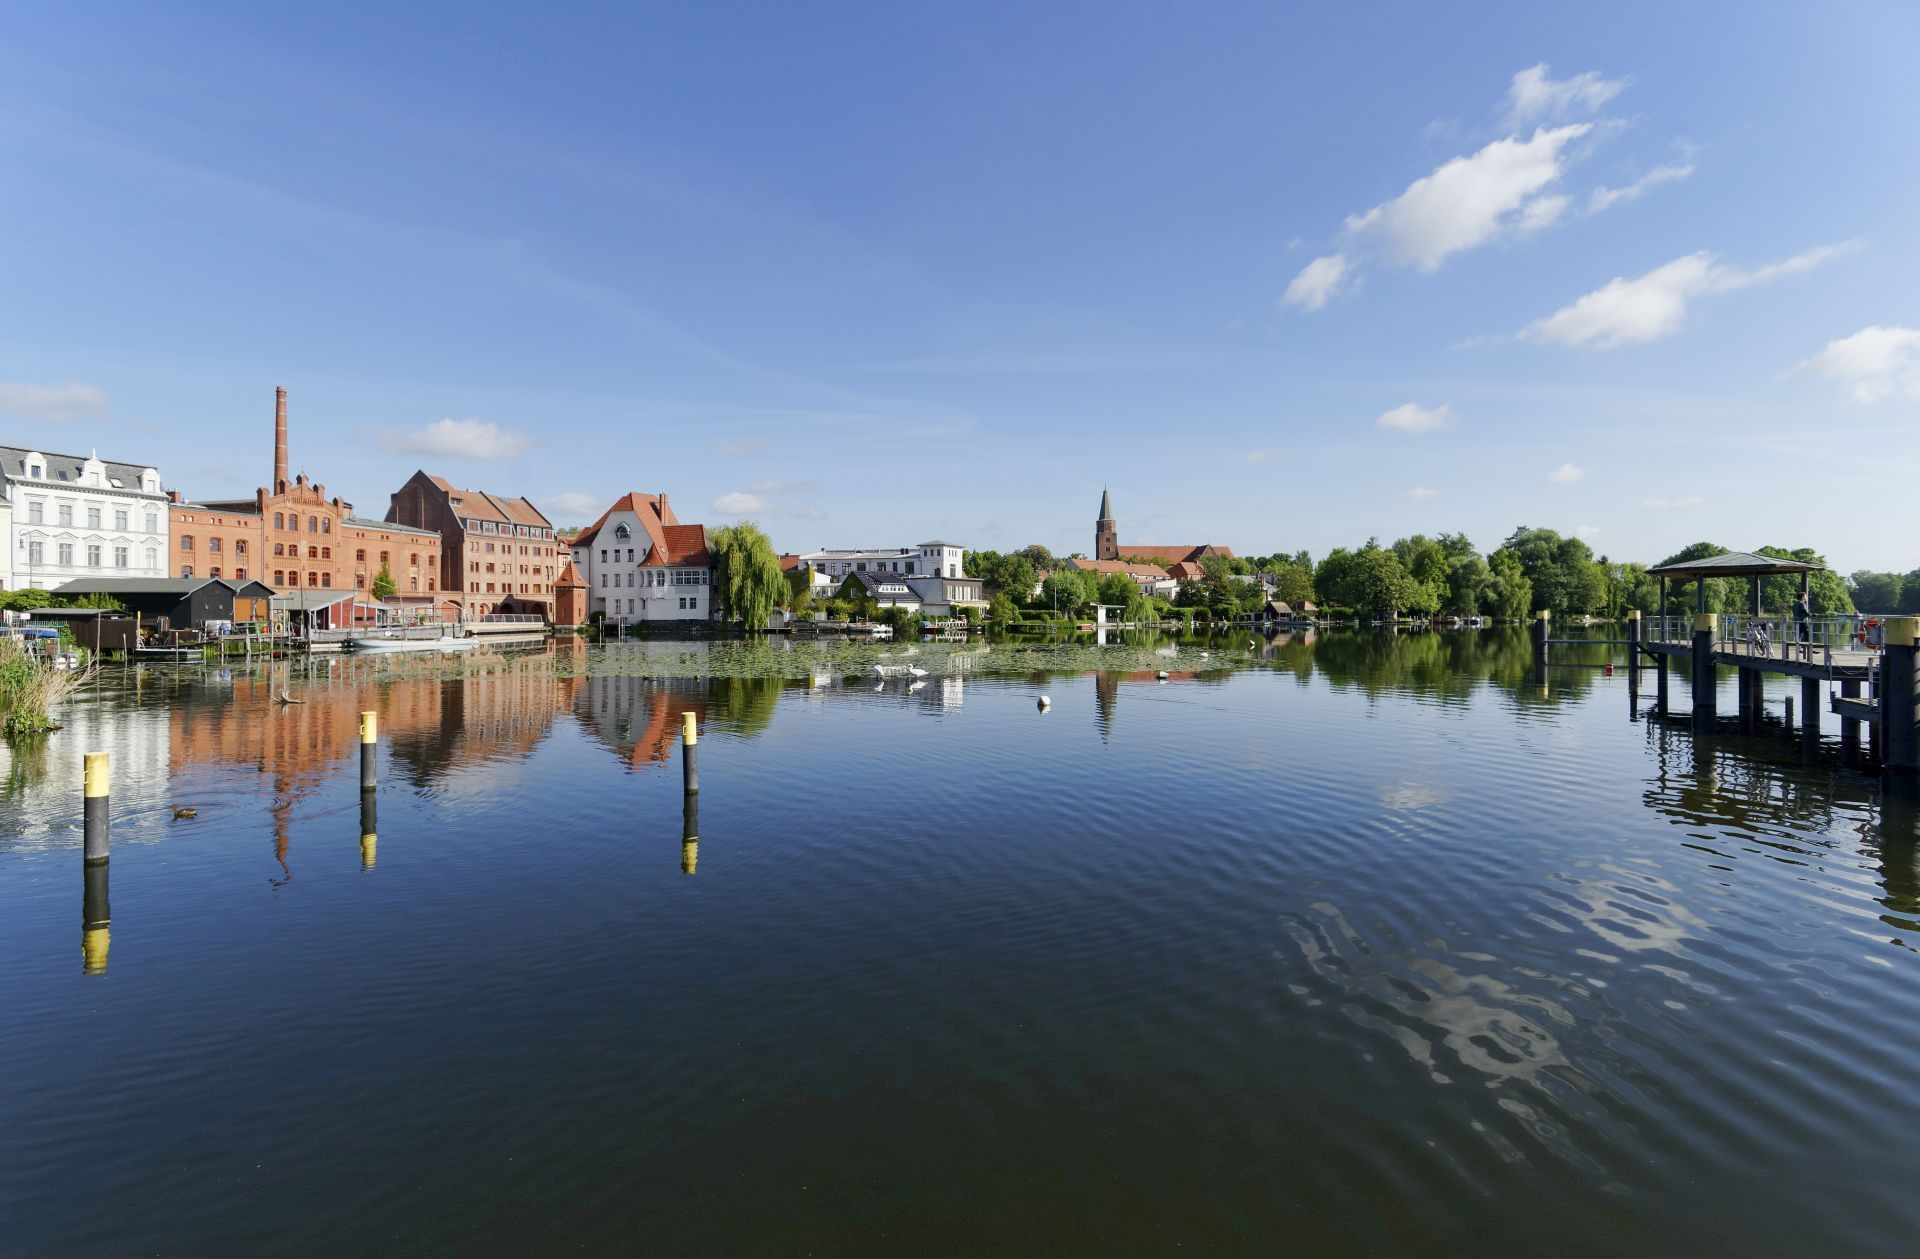 Dominsel in Brandenburg an der Havel © Ulf Boettcher